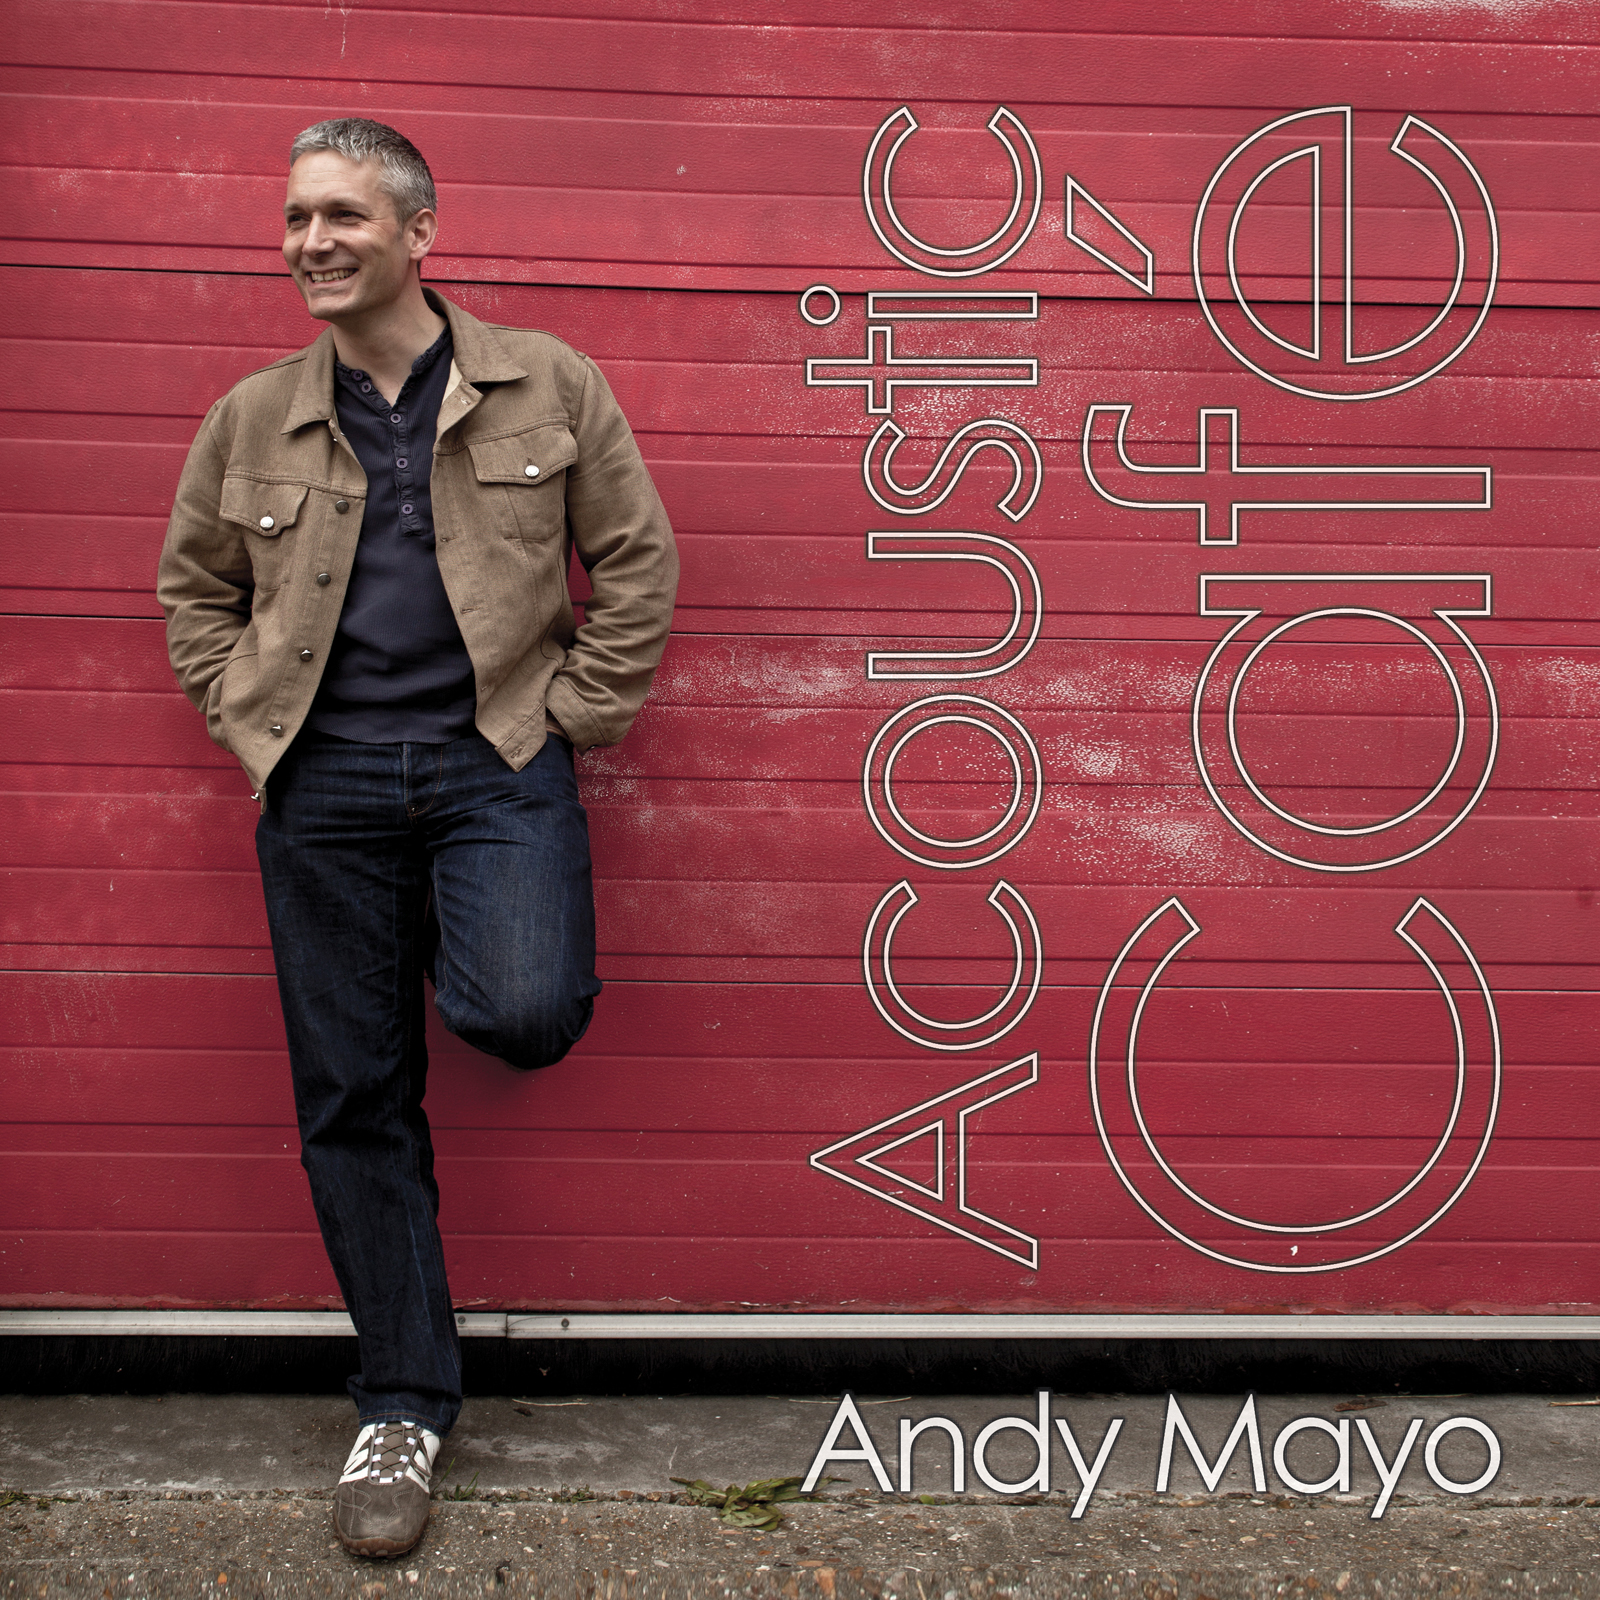 LABEL Turquoise Tracks--ARTIST Andy Mayo--RELEASE Acoustic Cafe